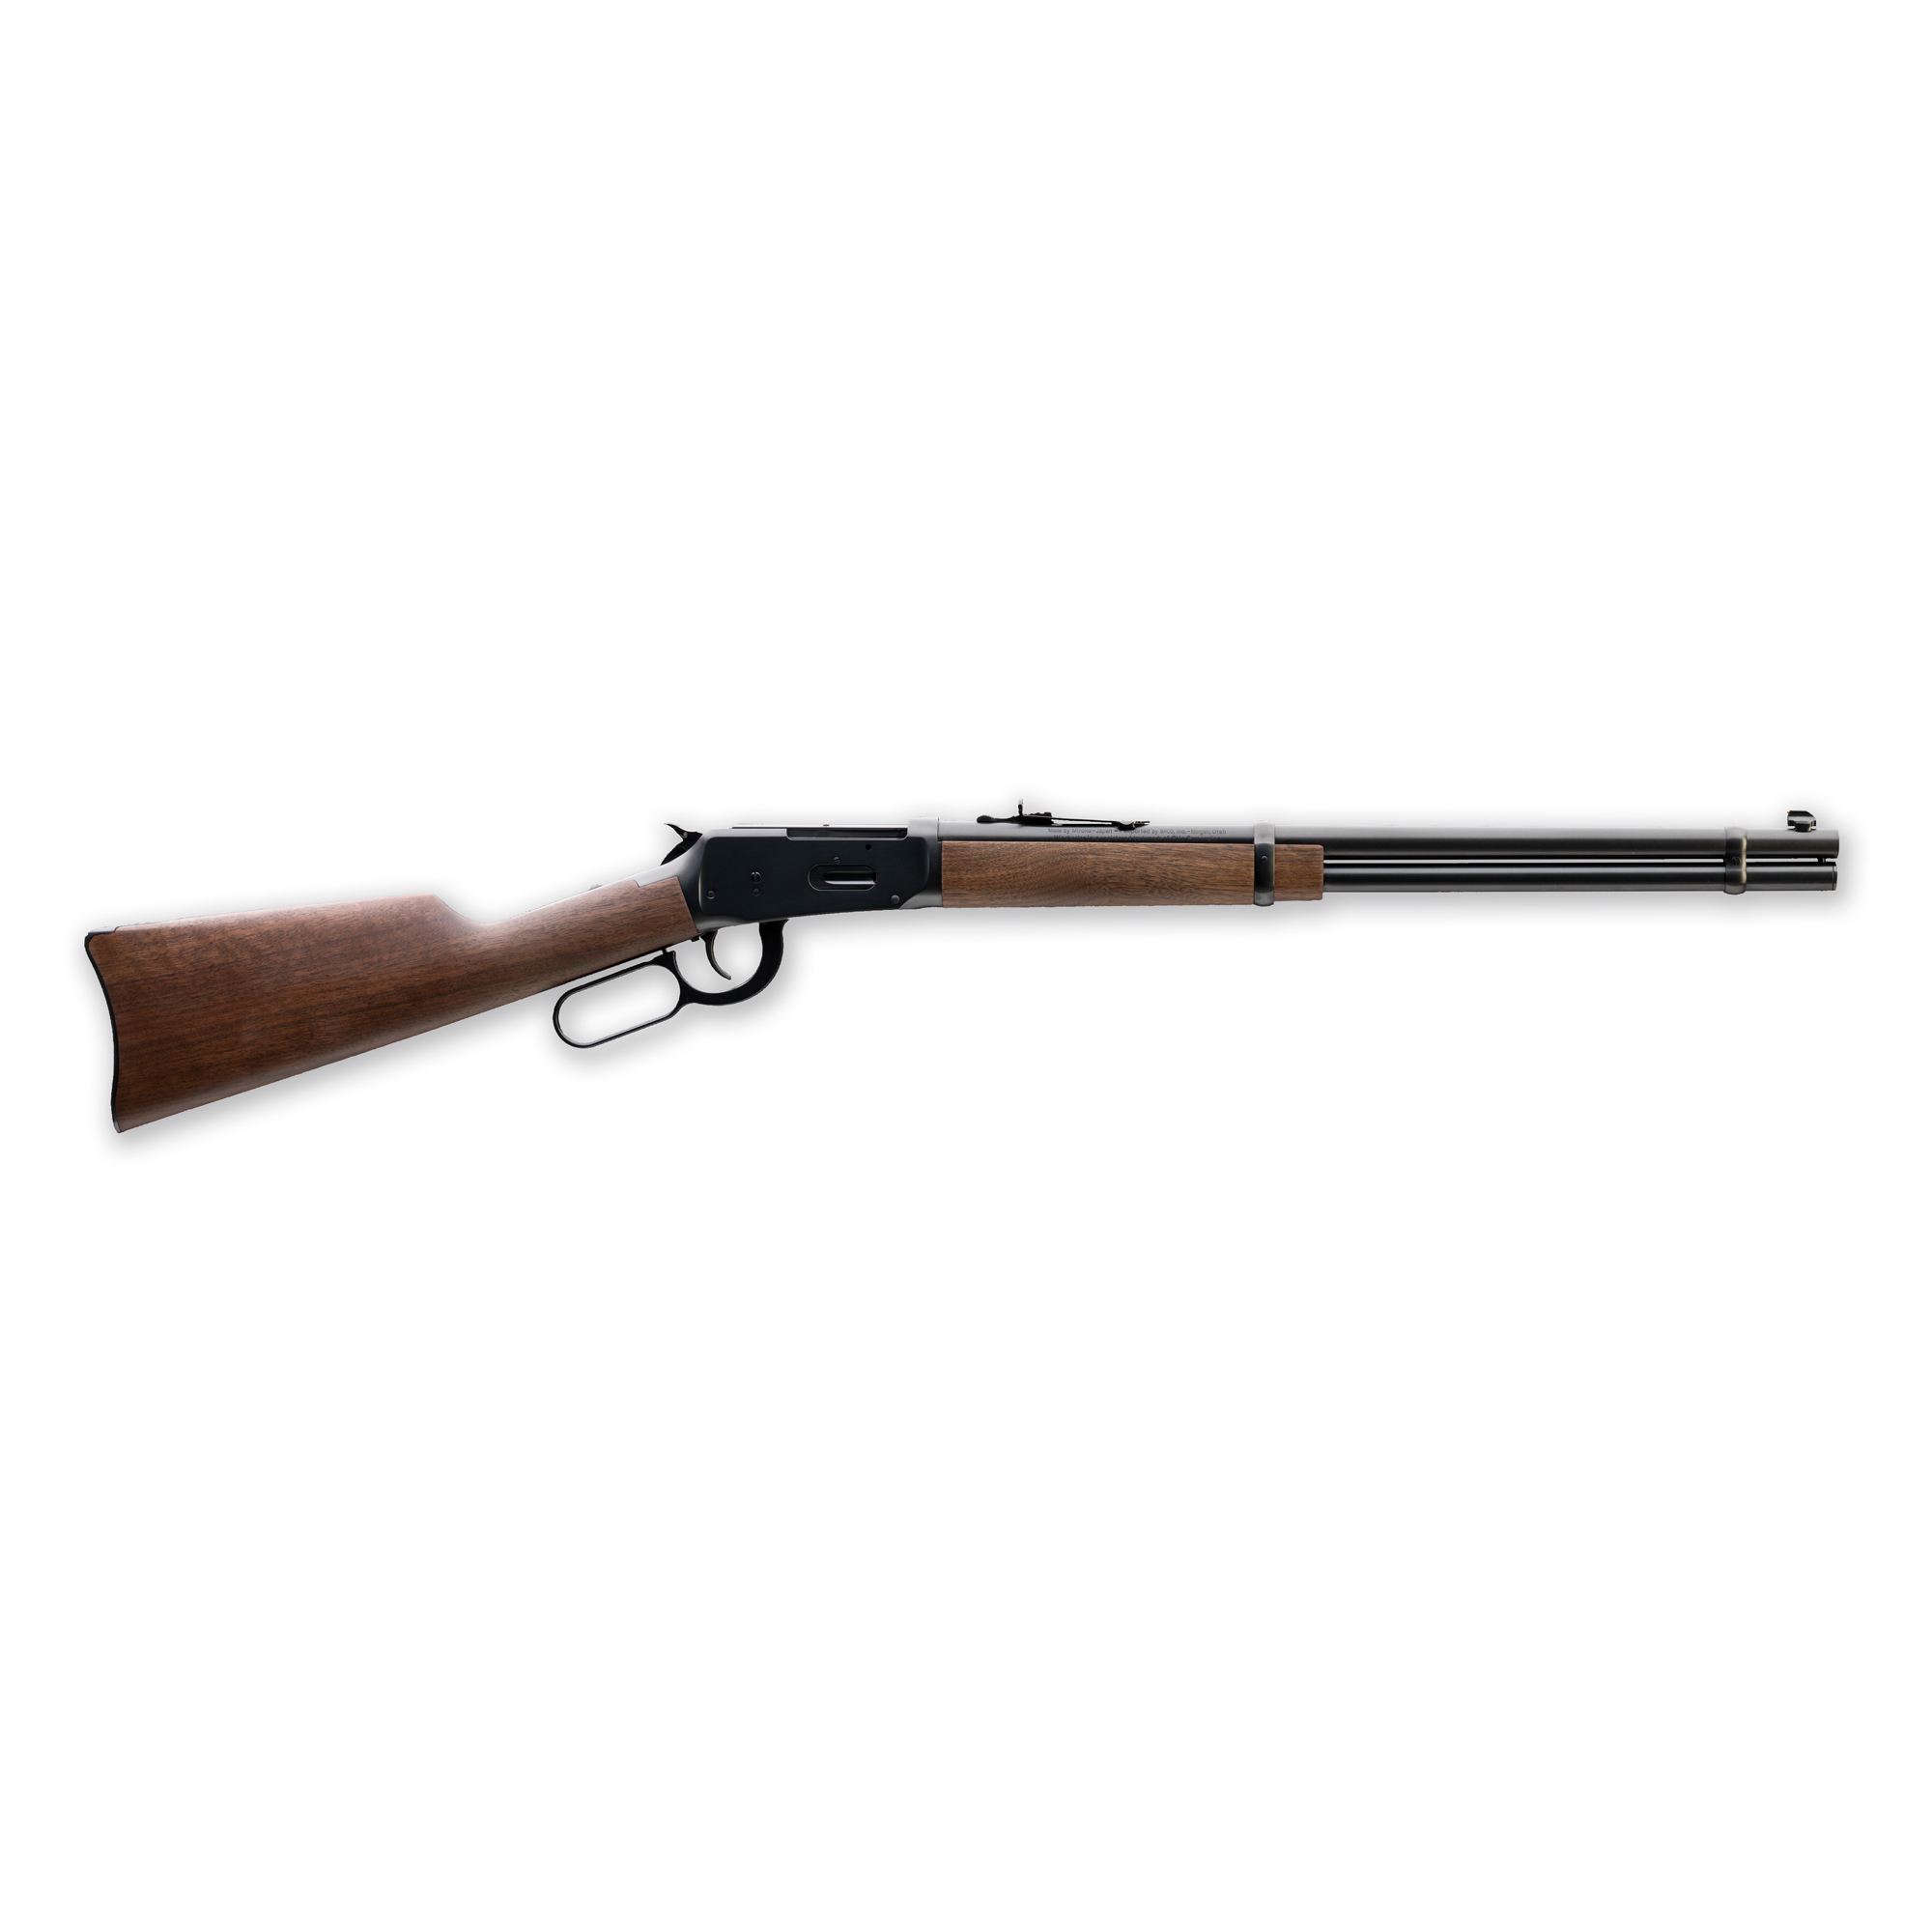 """The Model 94 Rifles and Carbines being made today surpass the quality and craftsmanship of any Model 94's made before. The button rifled barrels are triple checked at the factory"""" ensuring optimal accuracy. The smooth walnut stocks compliment the richly blued steel of the receiver and hardware. Round locking bolt trunnions help ensure a smooth"""" quick lever throw"""" imitated but unparalleled by the competition."""